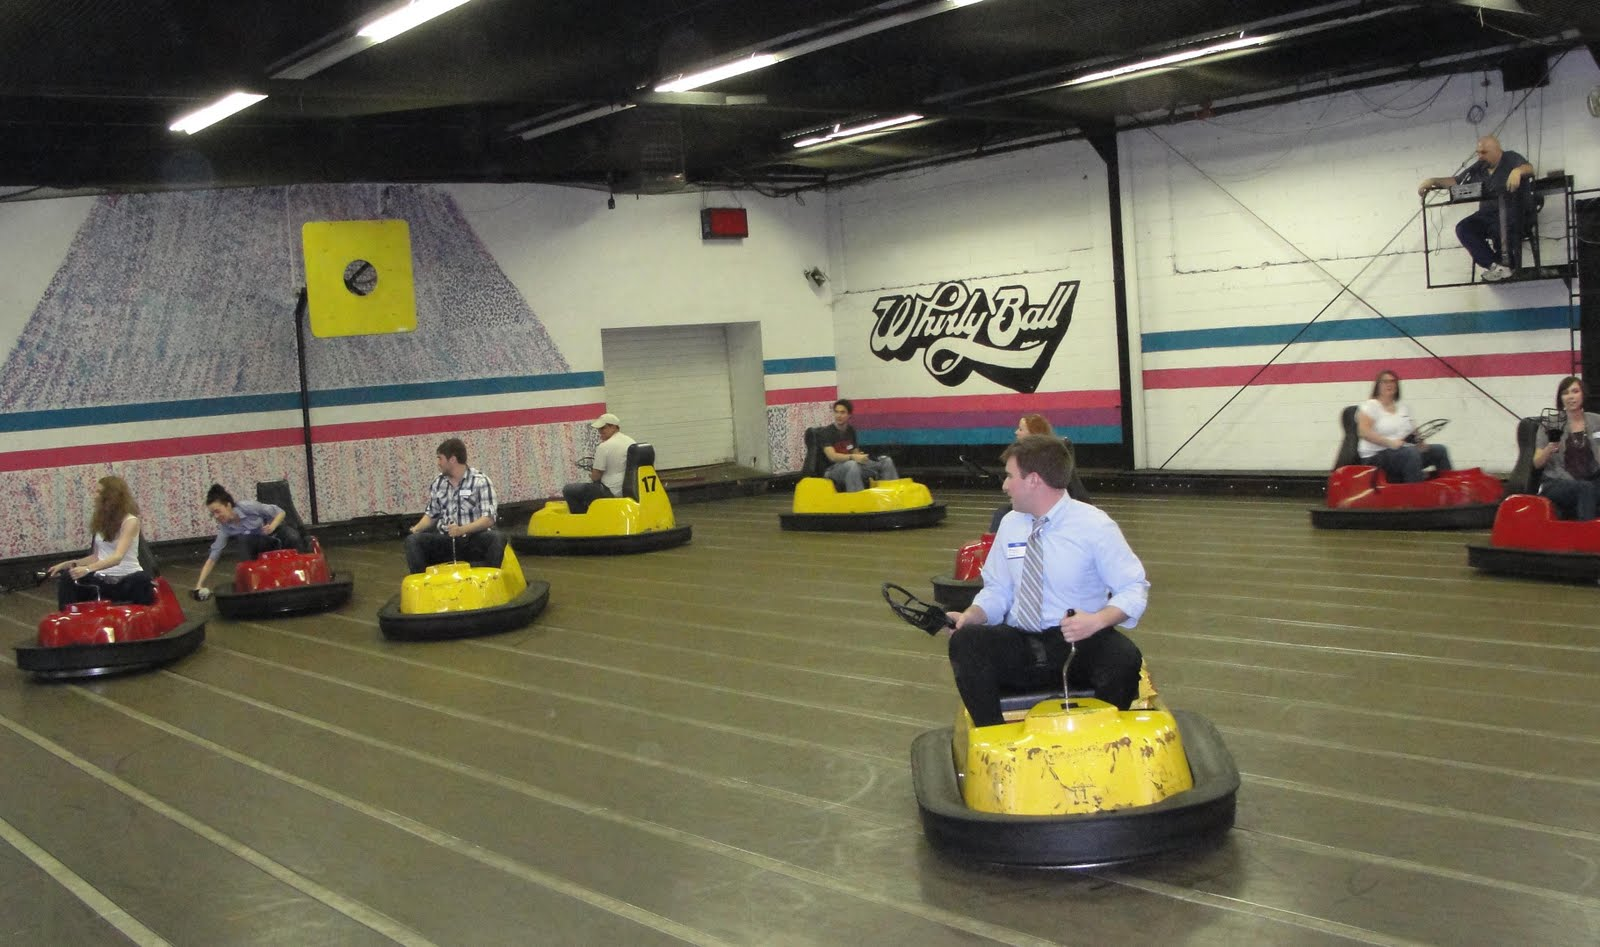 Cleveland S A Plum Who Wants To Whirlyball